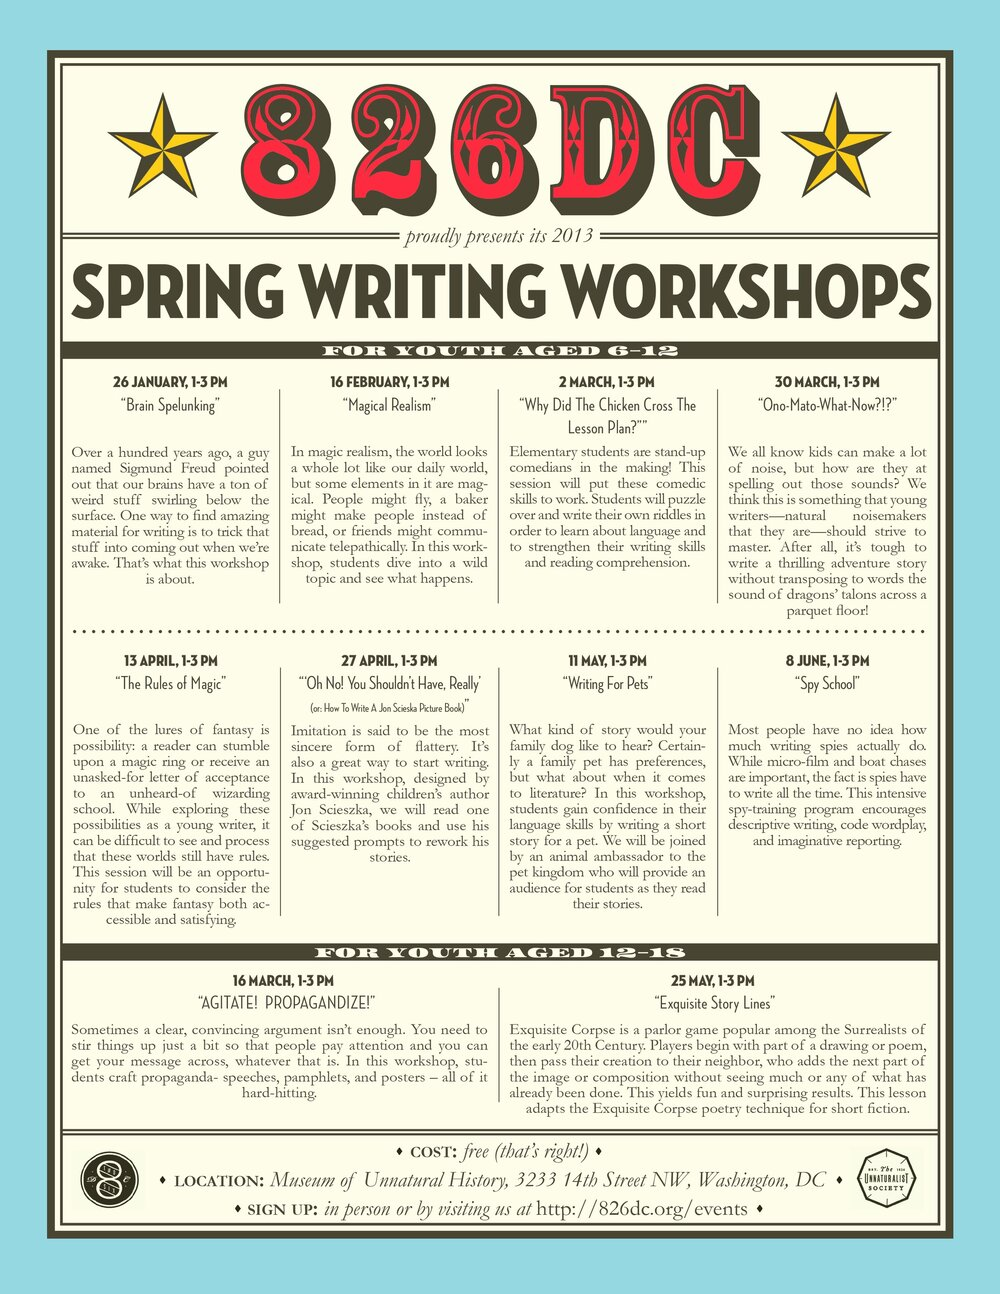 MUH spring 2013 flyer - color version.jpg